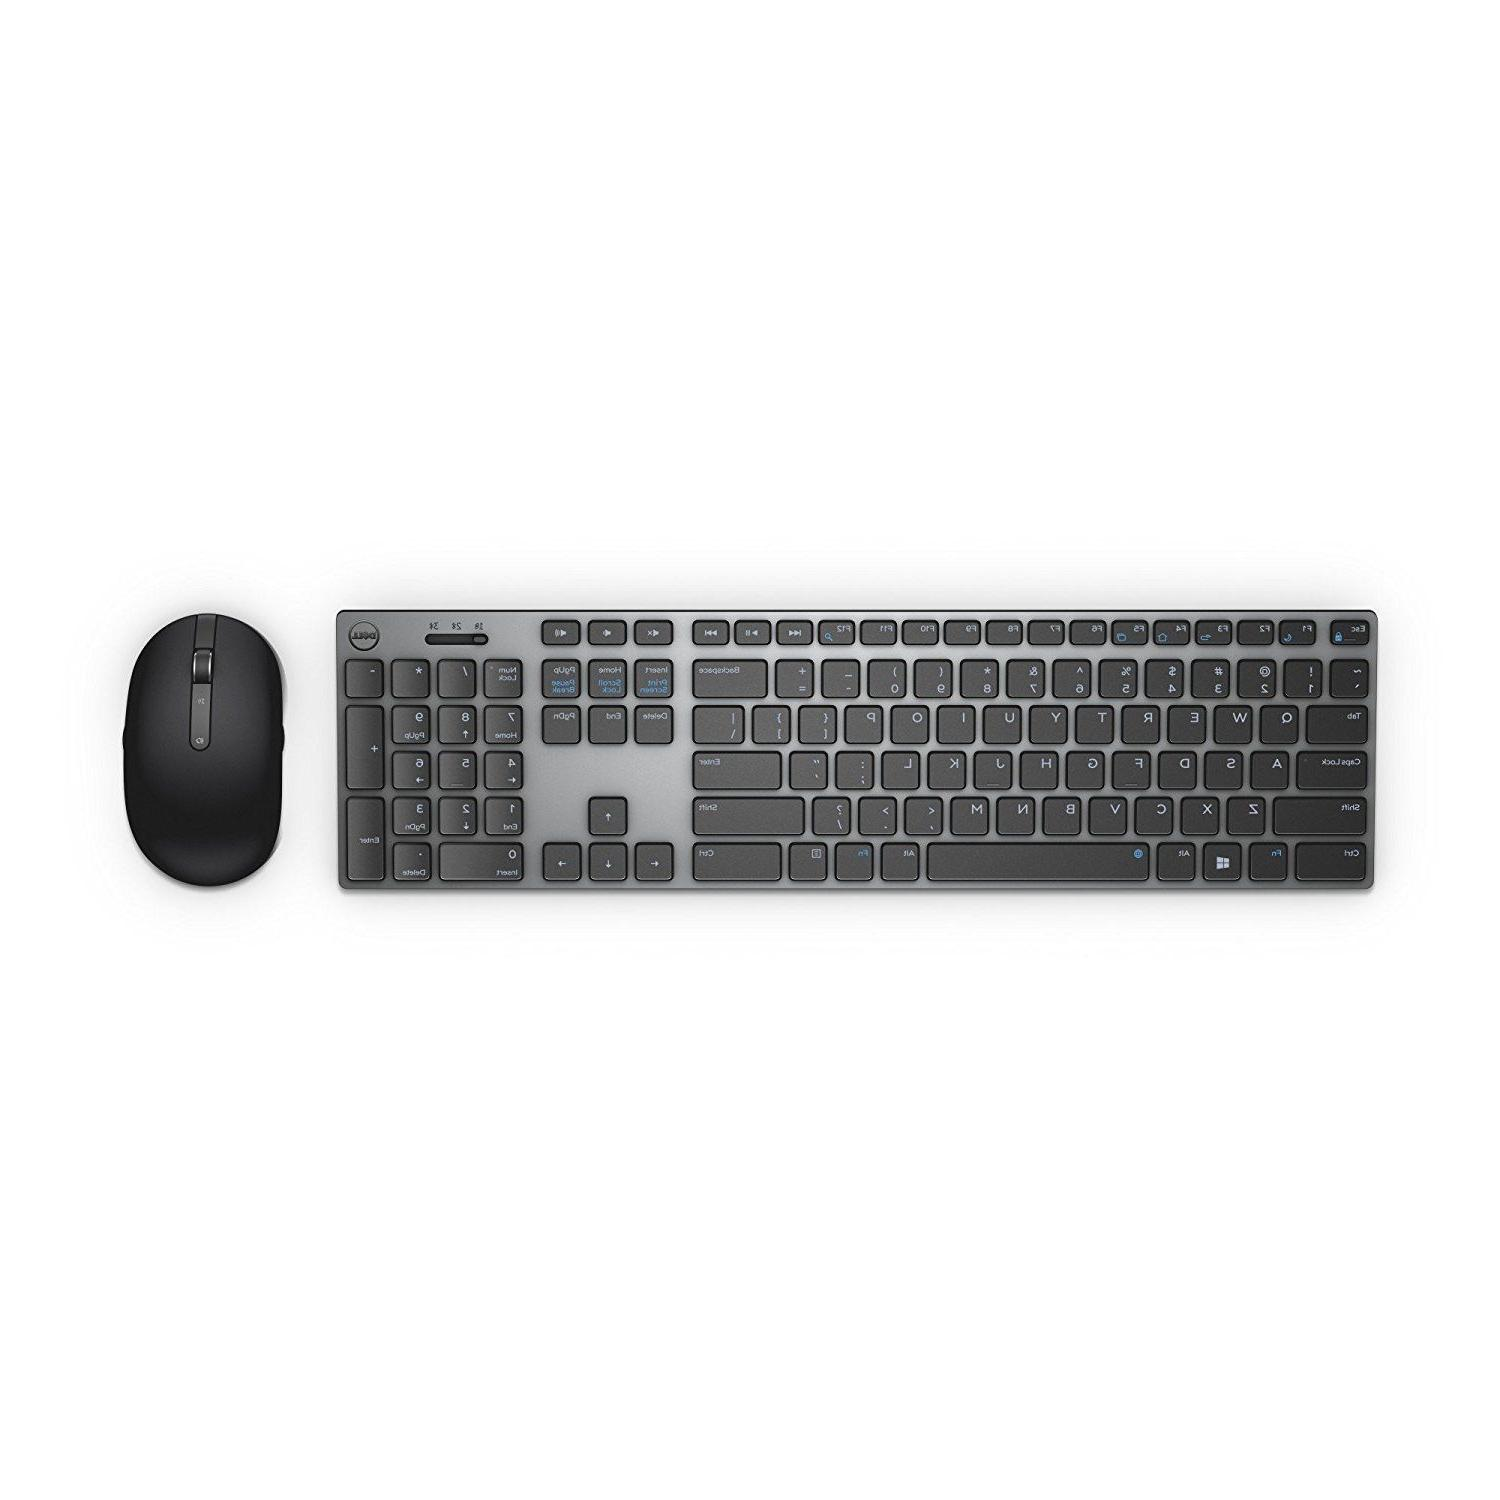 New Dell Premier Wireless Keyboard and Mouse - KM717